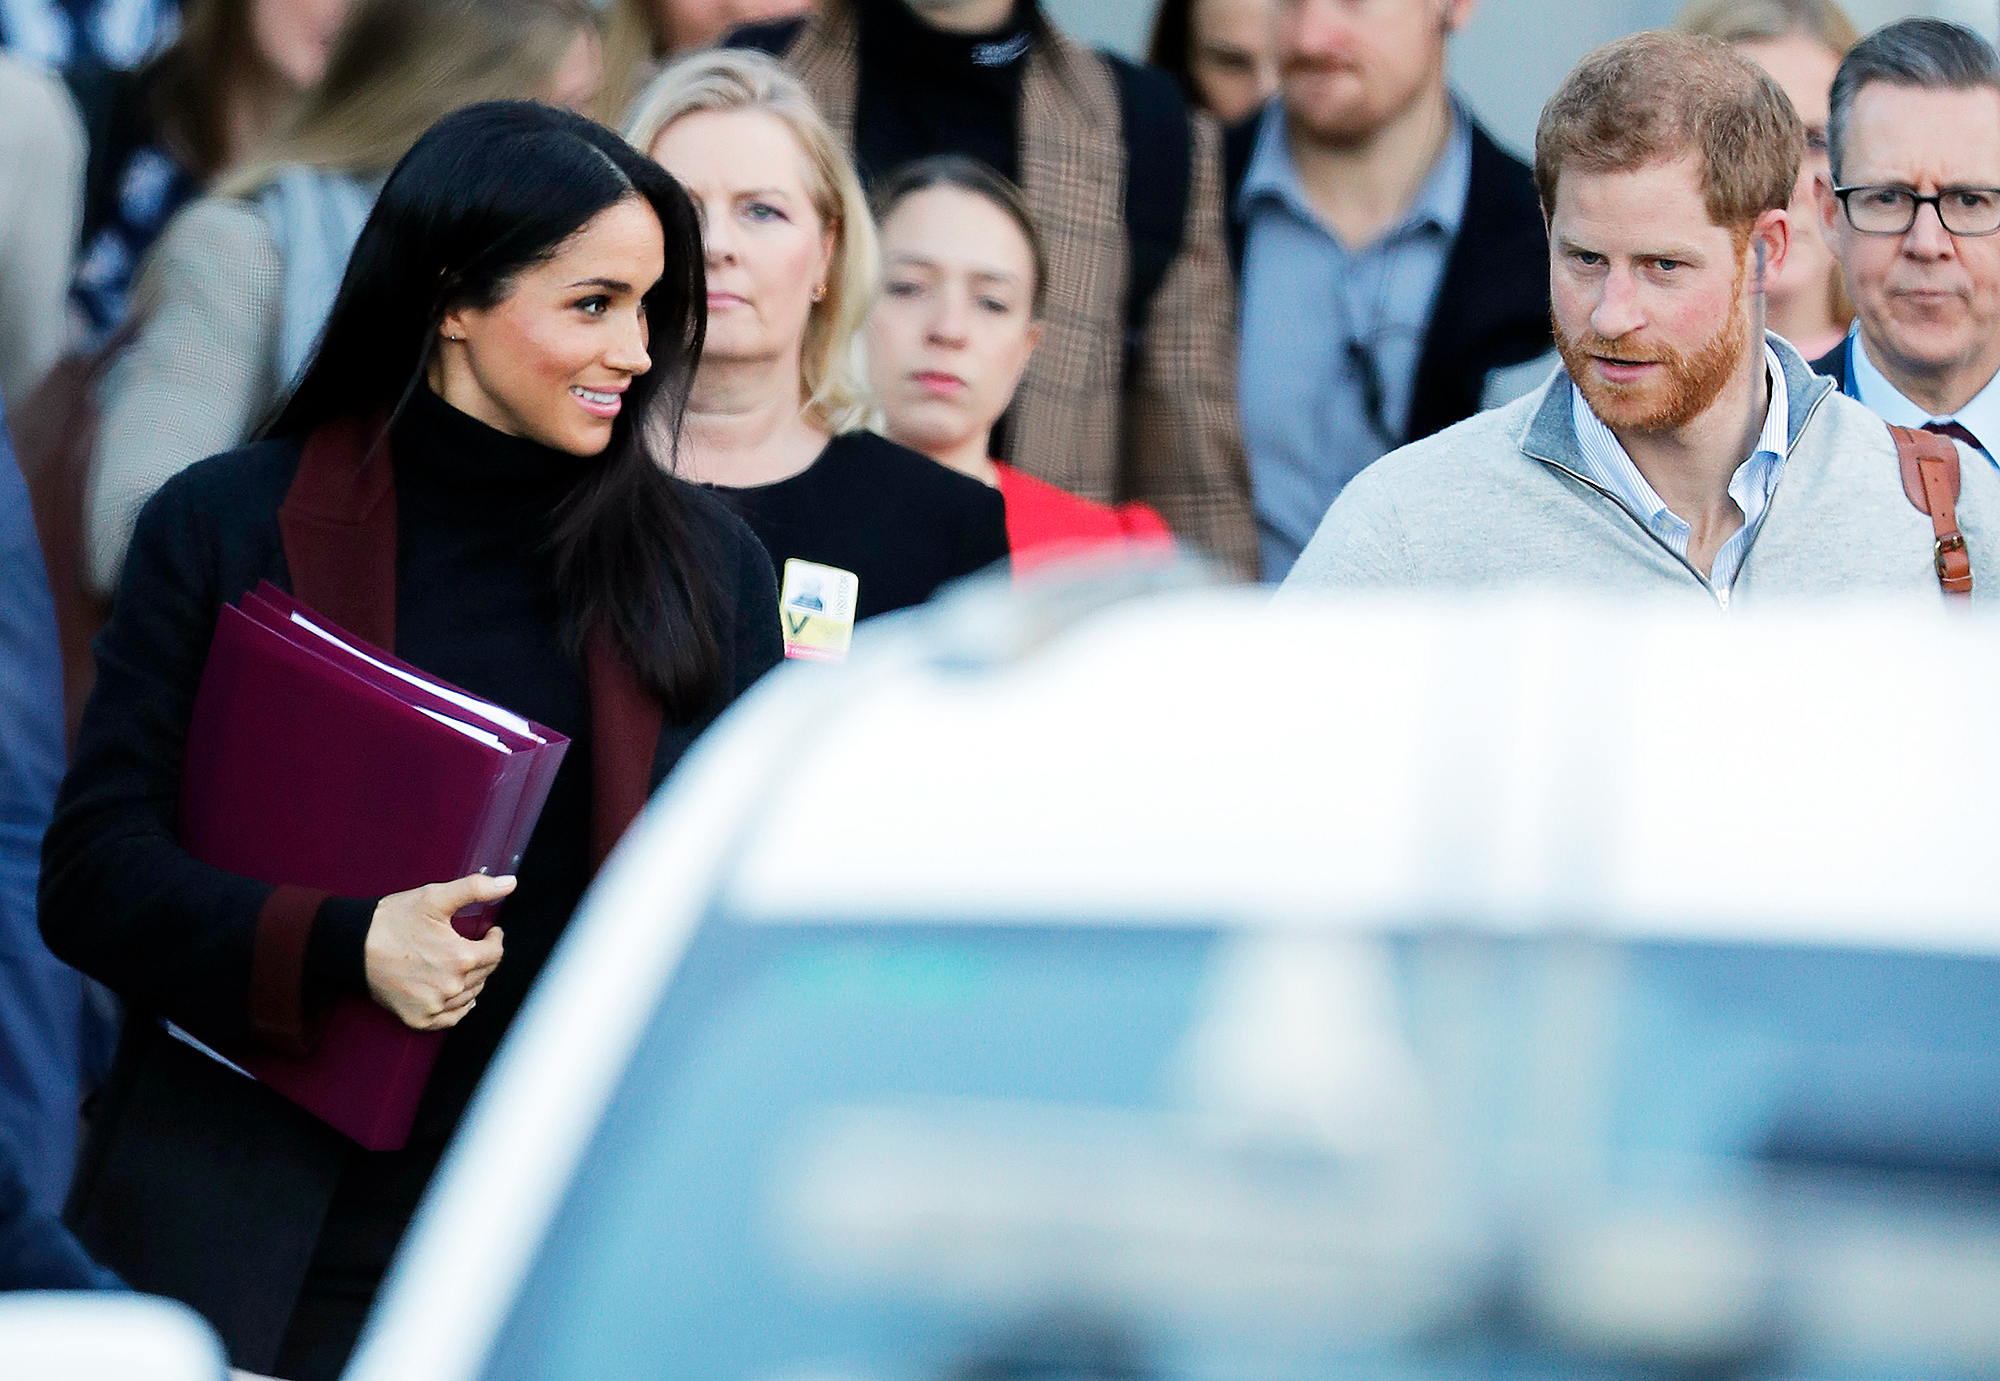 "Prince Harry Duchess Meghan Sydney Arrival - The Queen's former spokesperson Dickie Arbiter told The Mirror the trip will be a ""baptism of fire"" for Meghan but he expects the duchess will come through the rigorous tour ""with flying colors."""